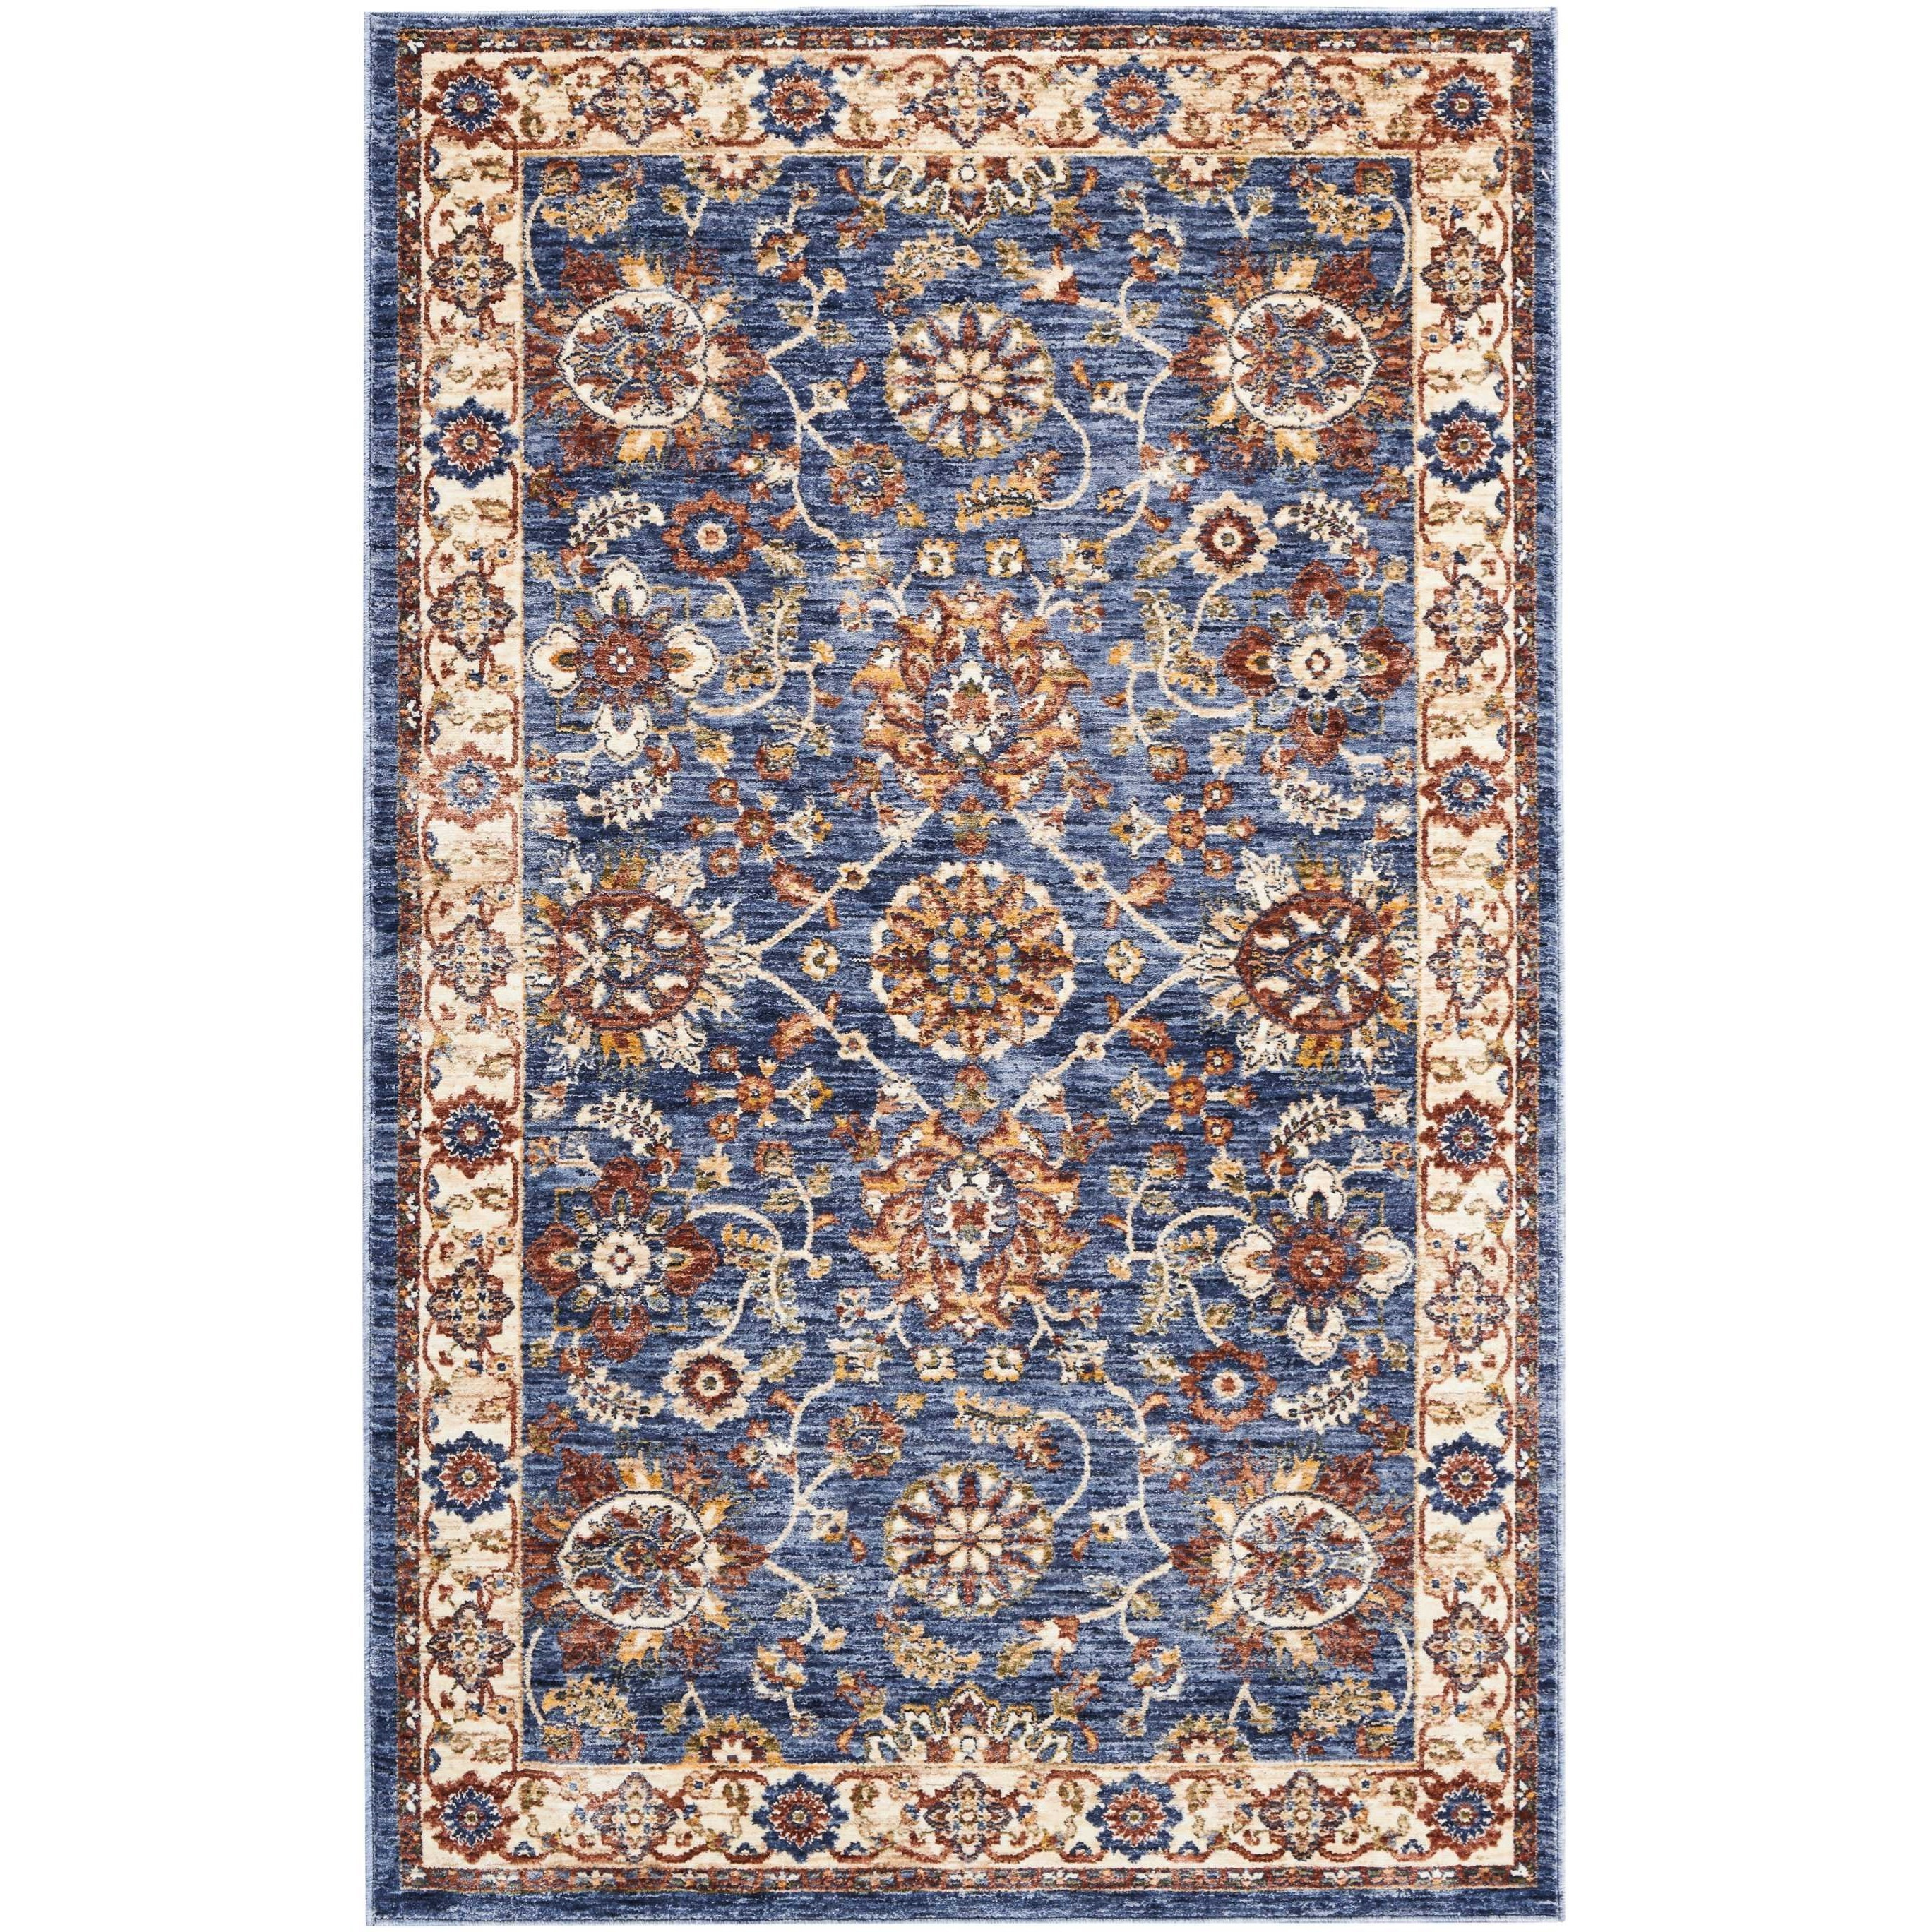 Lagos 3' X 5' Blue Rug by Nourison at Home Collections Furniture